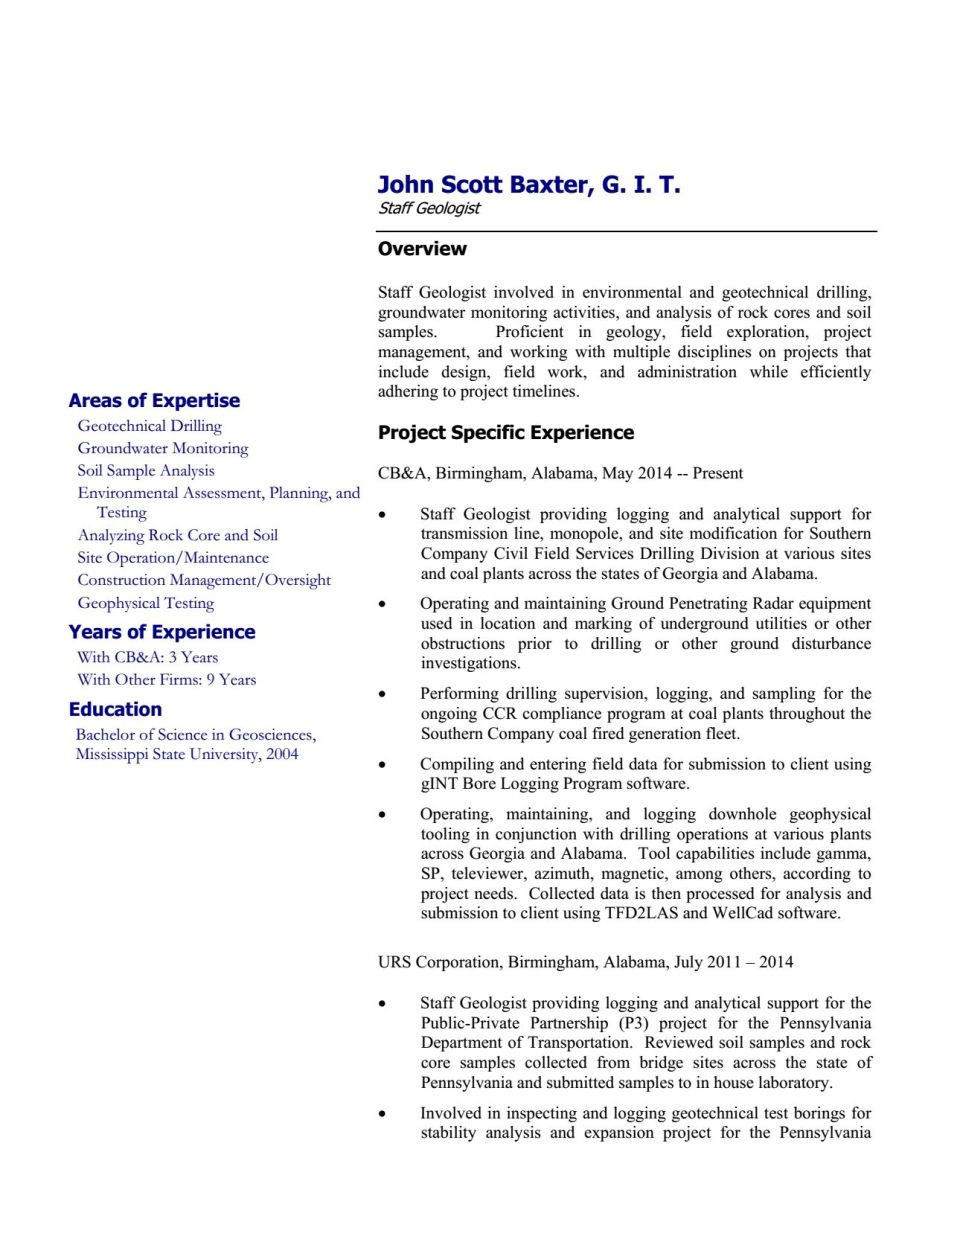 Baxter_Scott_resume_05012017